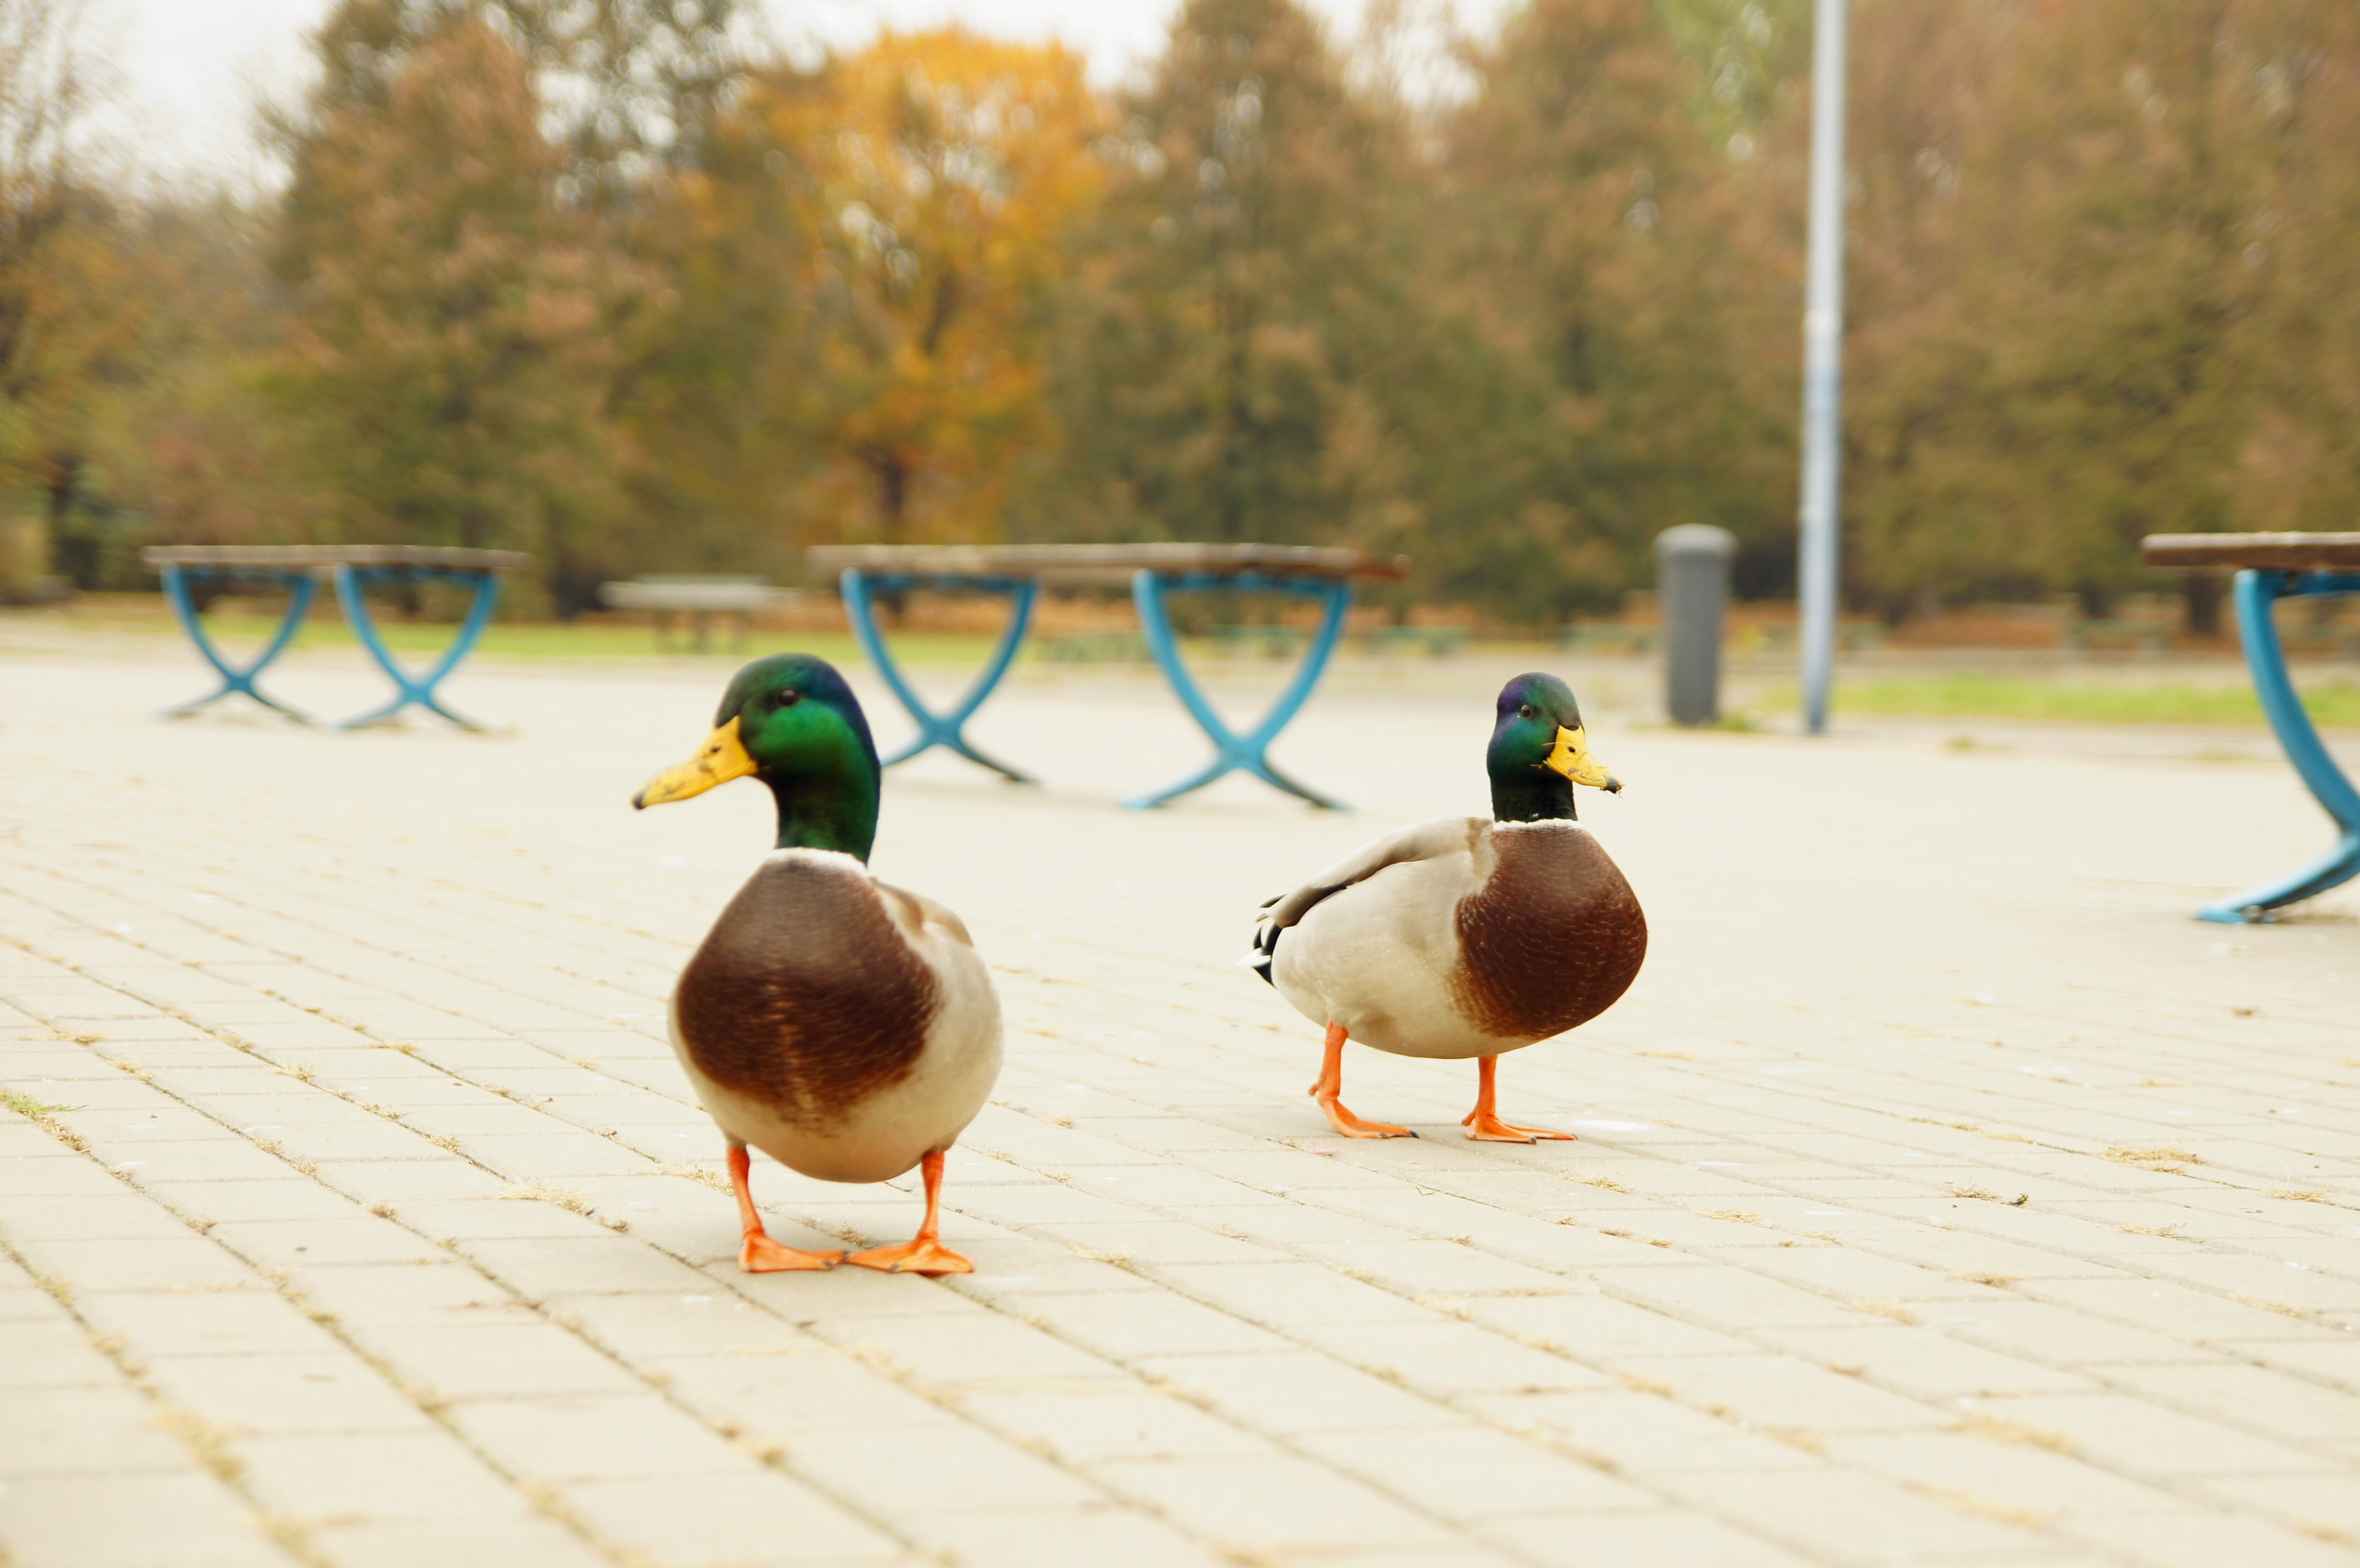 Two ducks walking - Our Great Photos